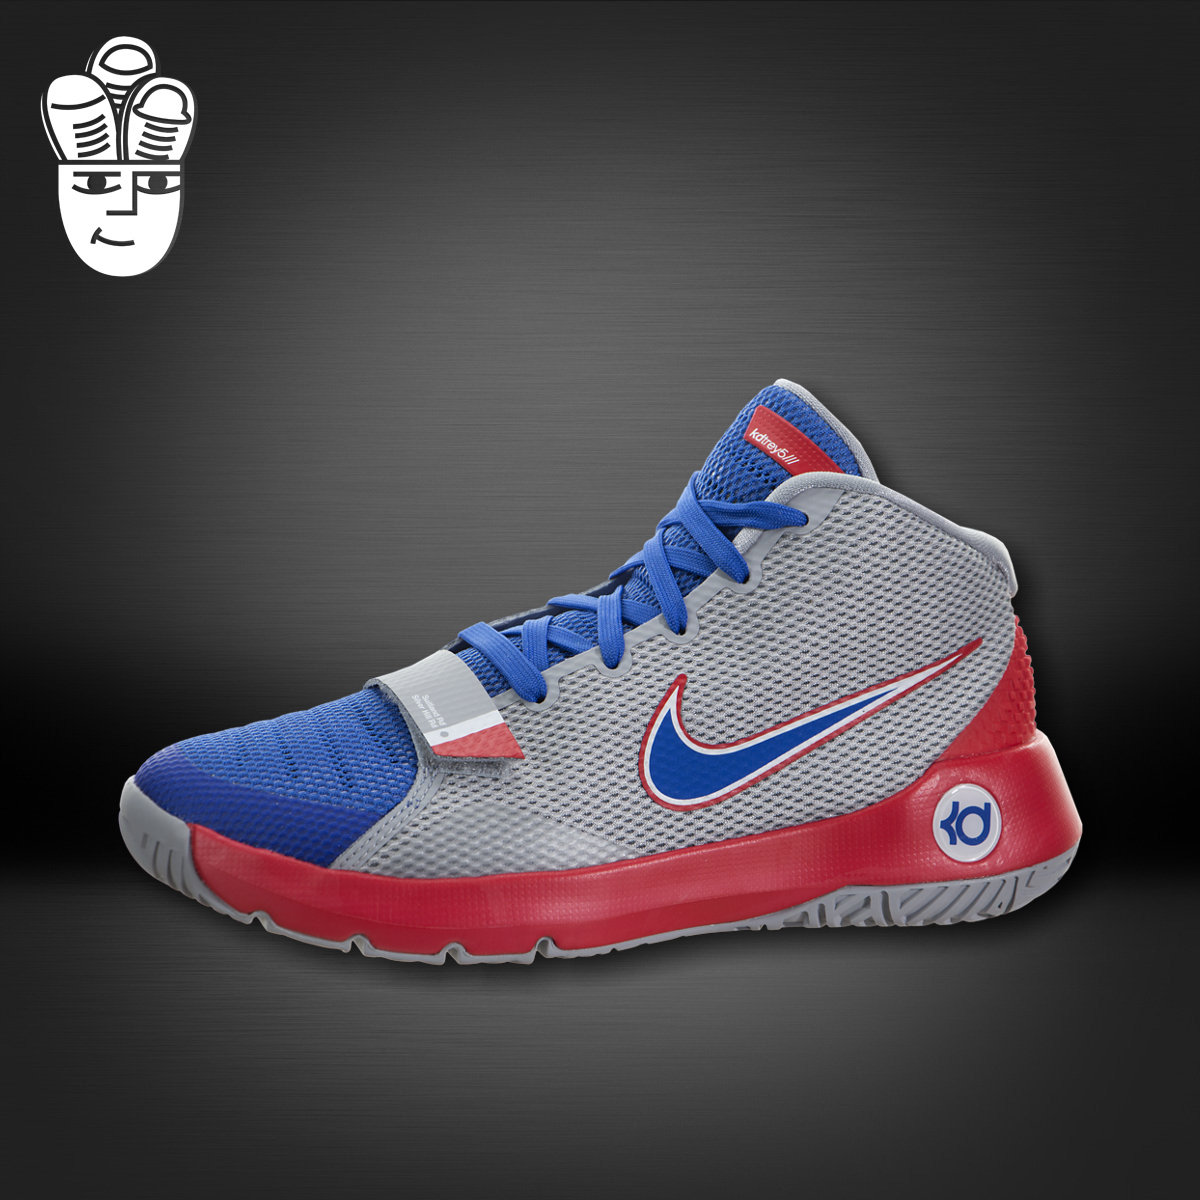 9e5dcfa738c9 Buy Nike kd trey 5  Acirc  nbsp vii (kids) durant nike basketball shoes for  men and women series in Cheap Price on m.alibaba.com